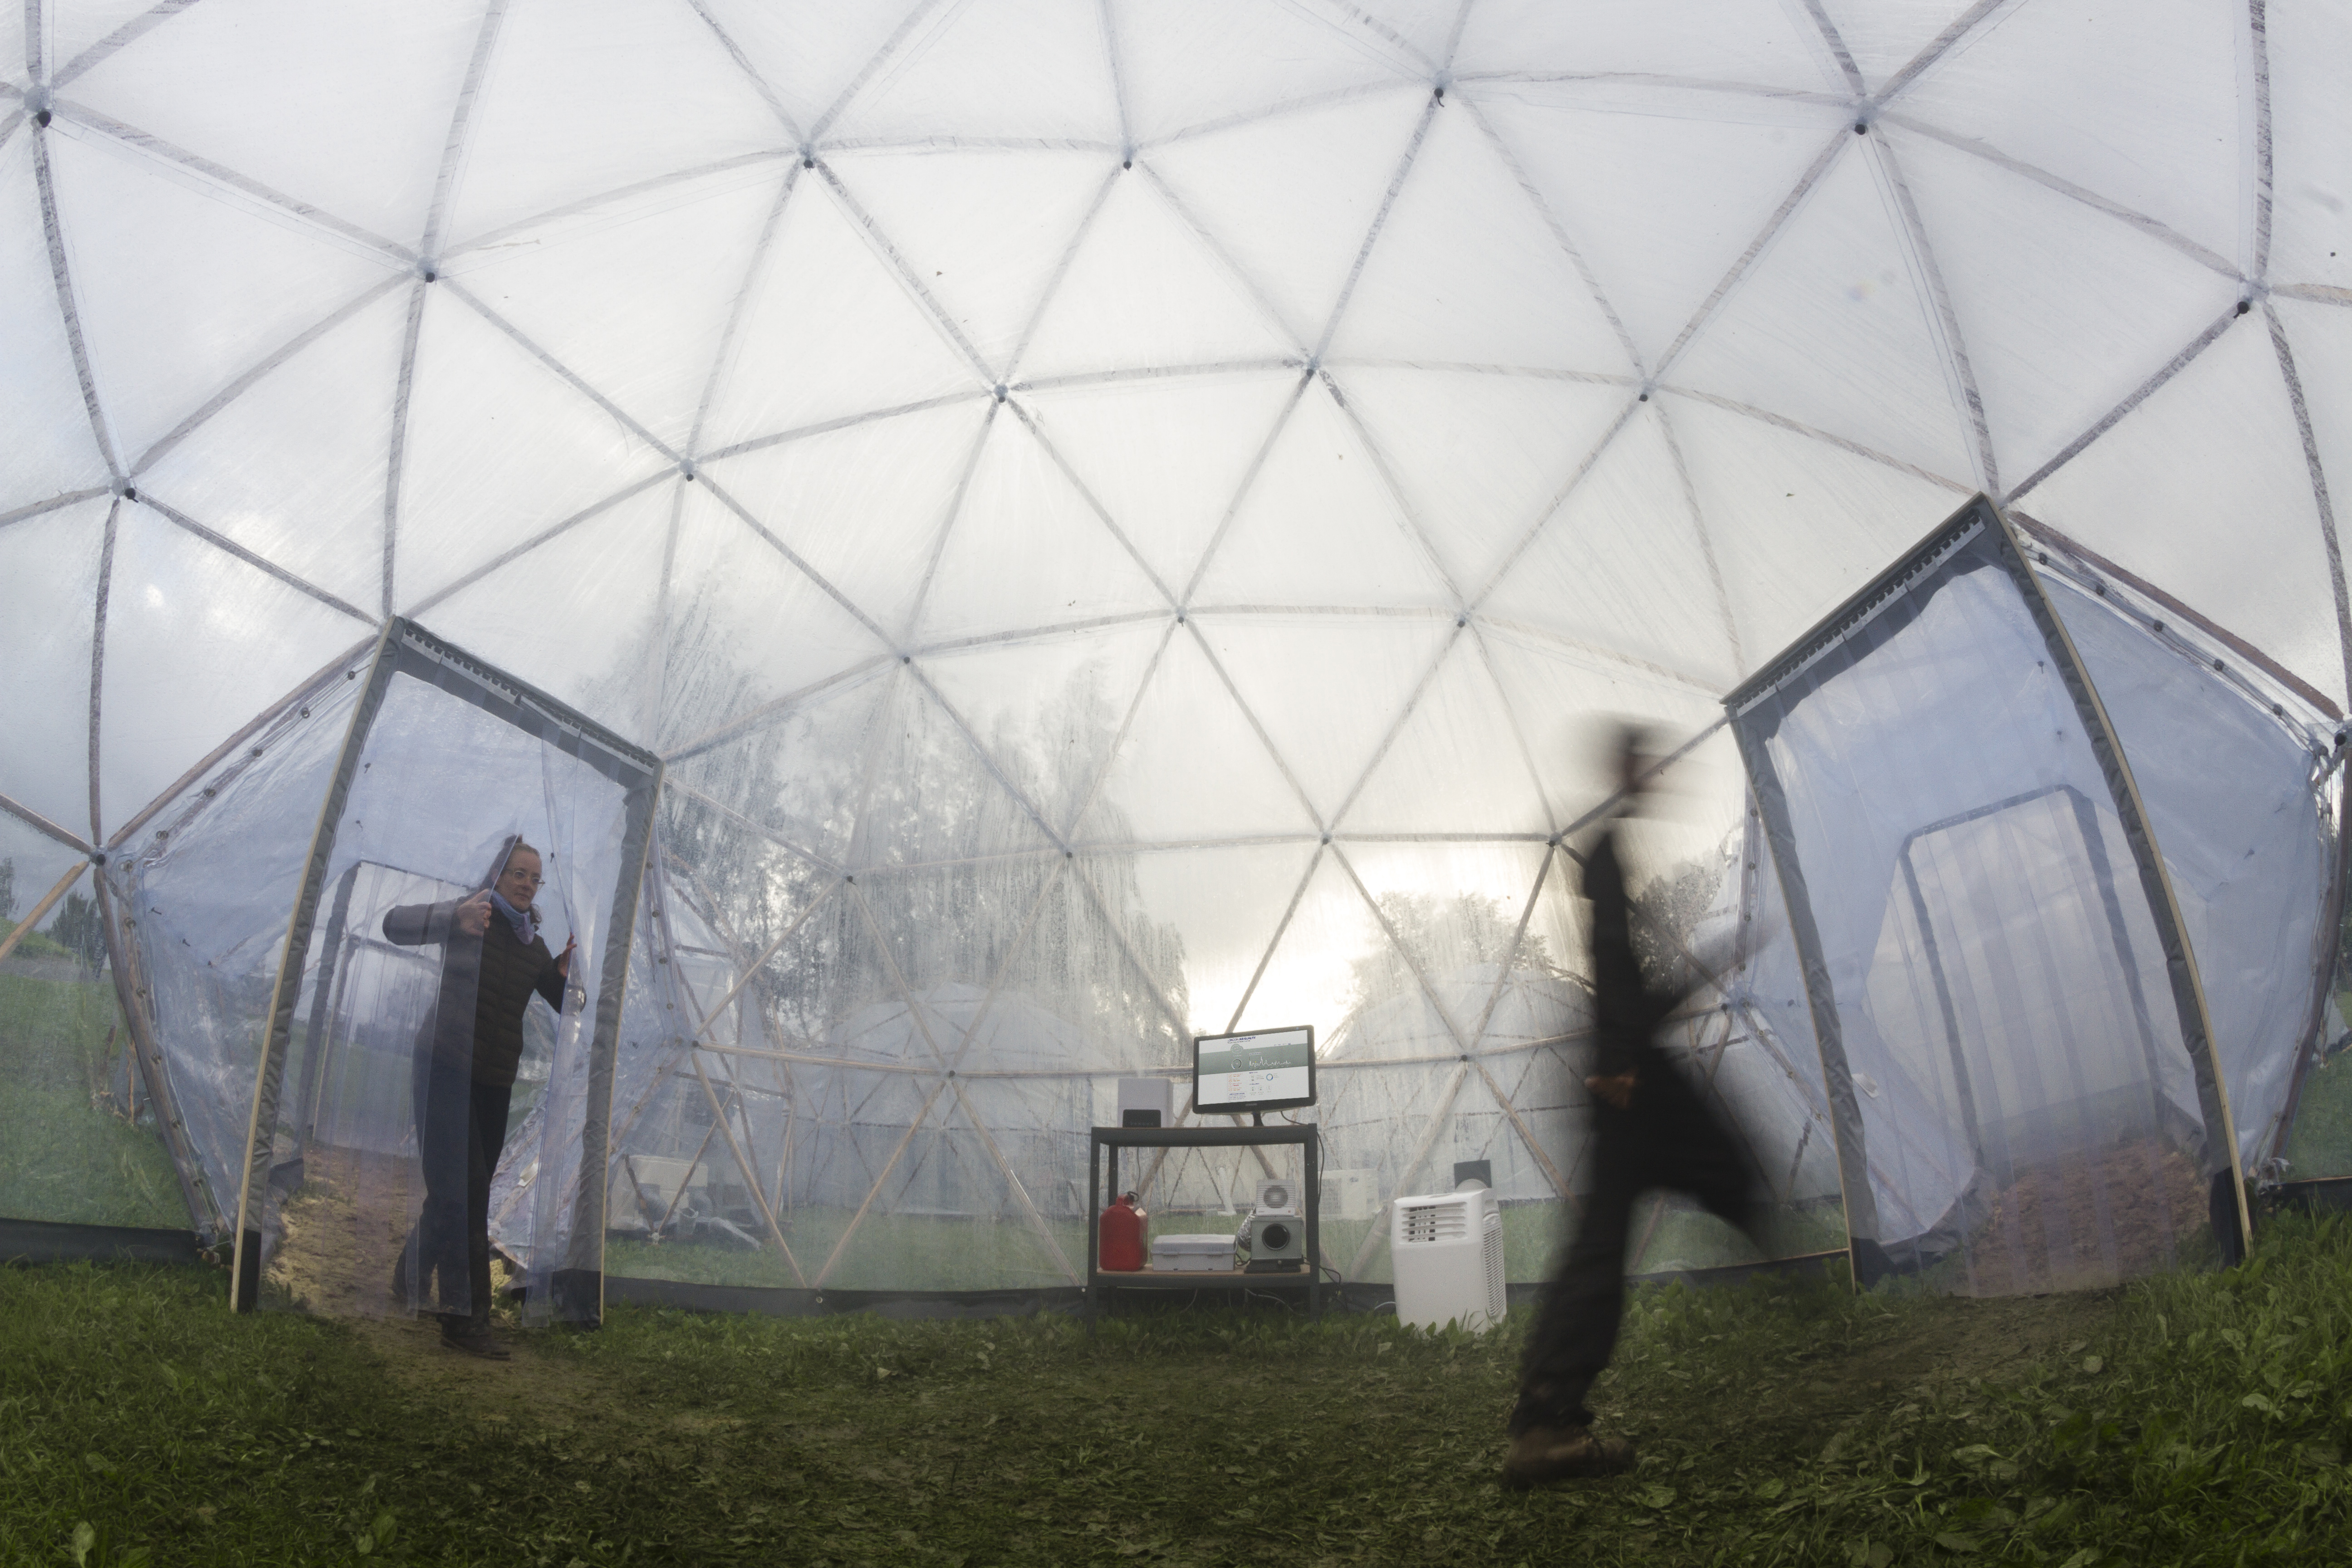 Trondheim 20.06.2017 : The science festival Starmus IV at NTNU, Trondheim, Norway. The Pollution Pods are six pods connected by hallways; each holding the atmosphere of one of the world's six most polluted cities. The installation has been created by British climate artist Michael Pinsky. Photo: Thor Nielsen / NTNU